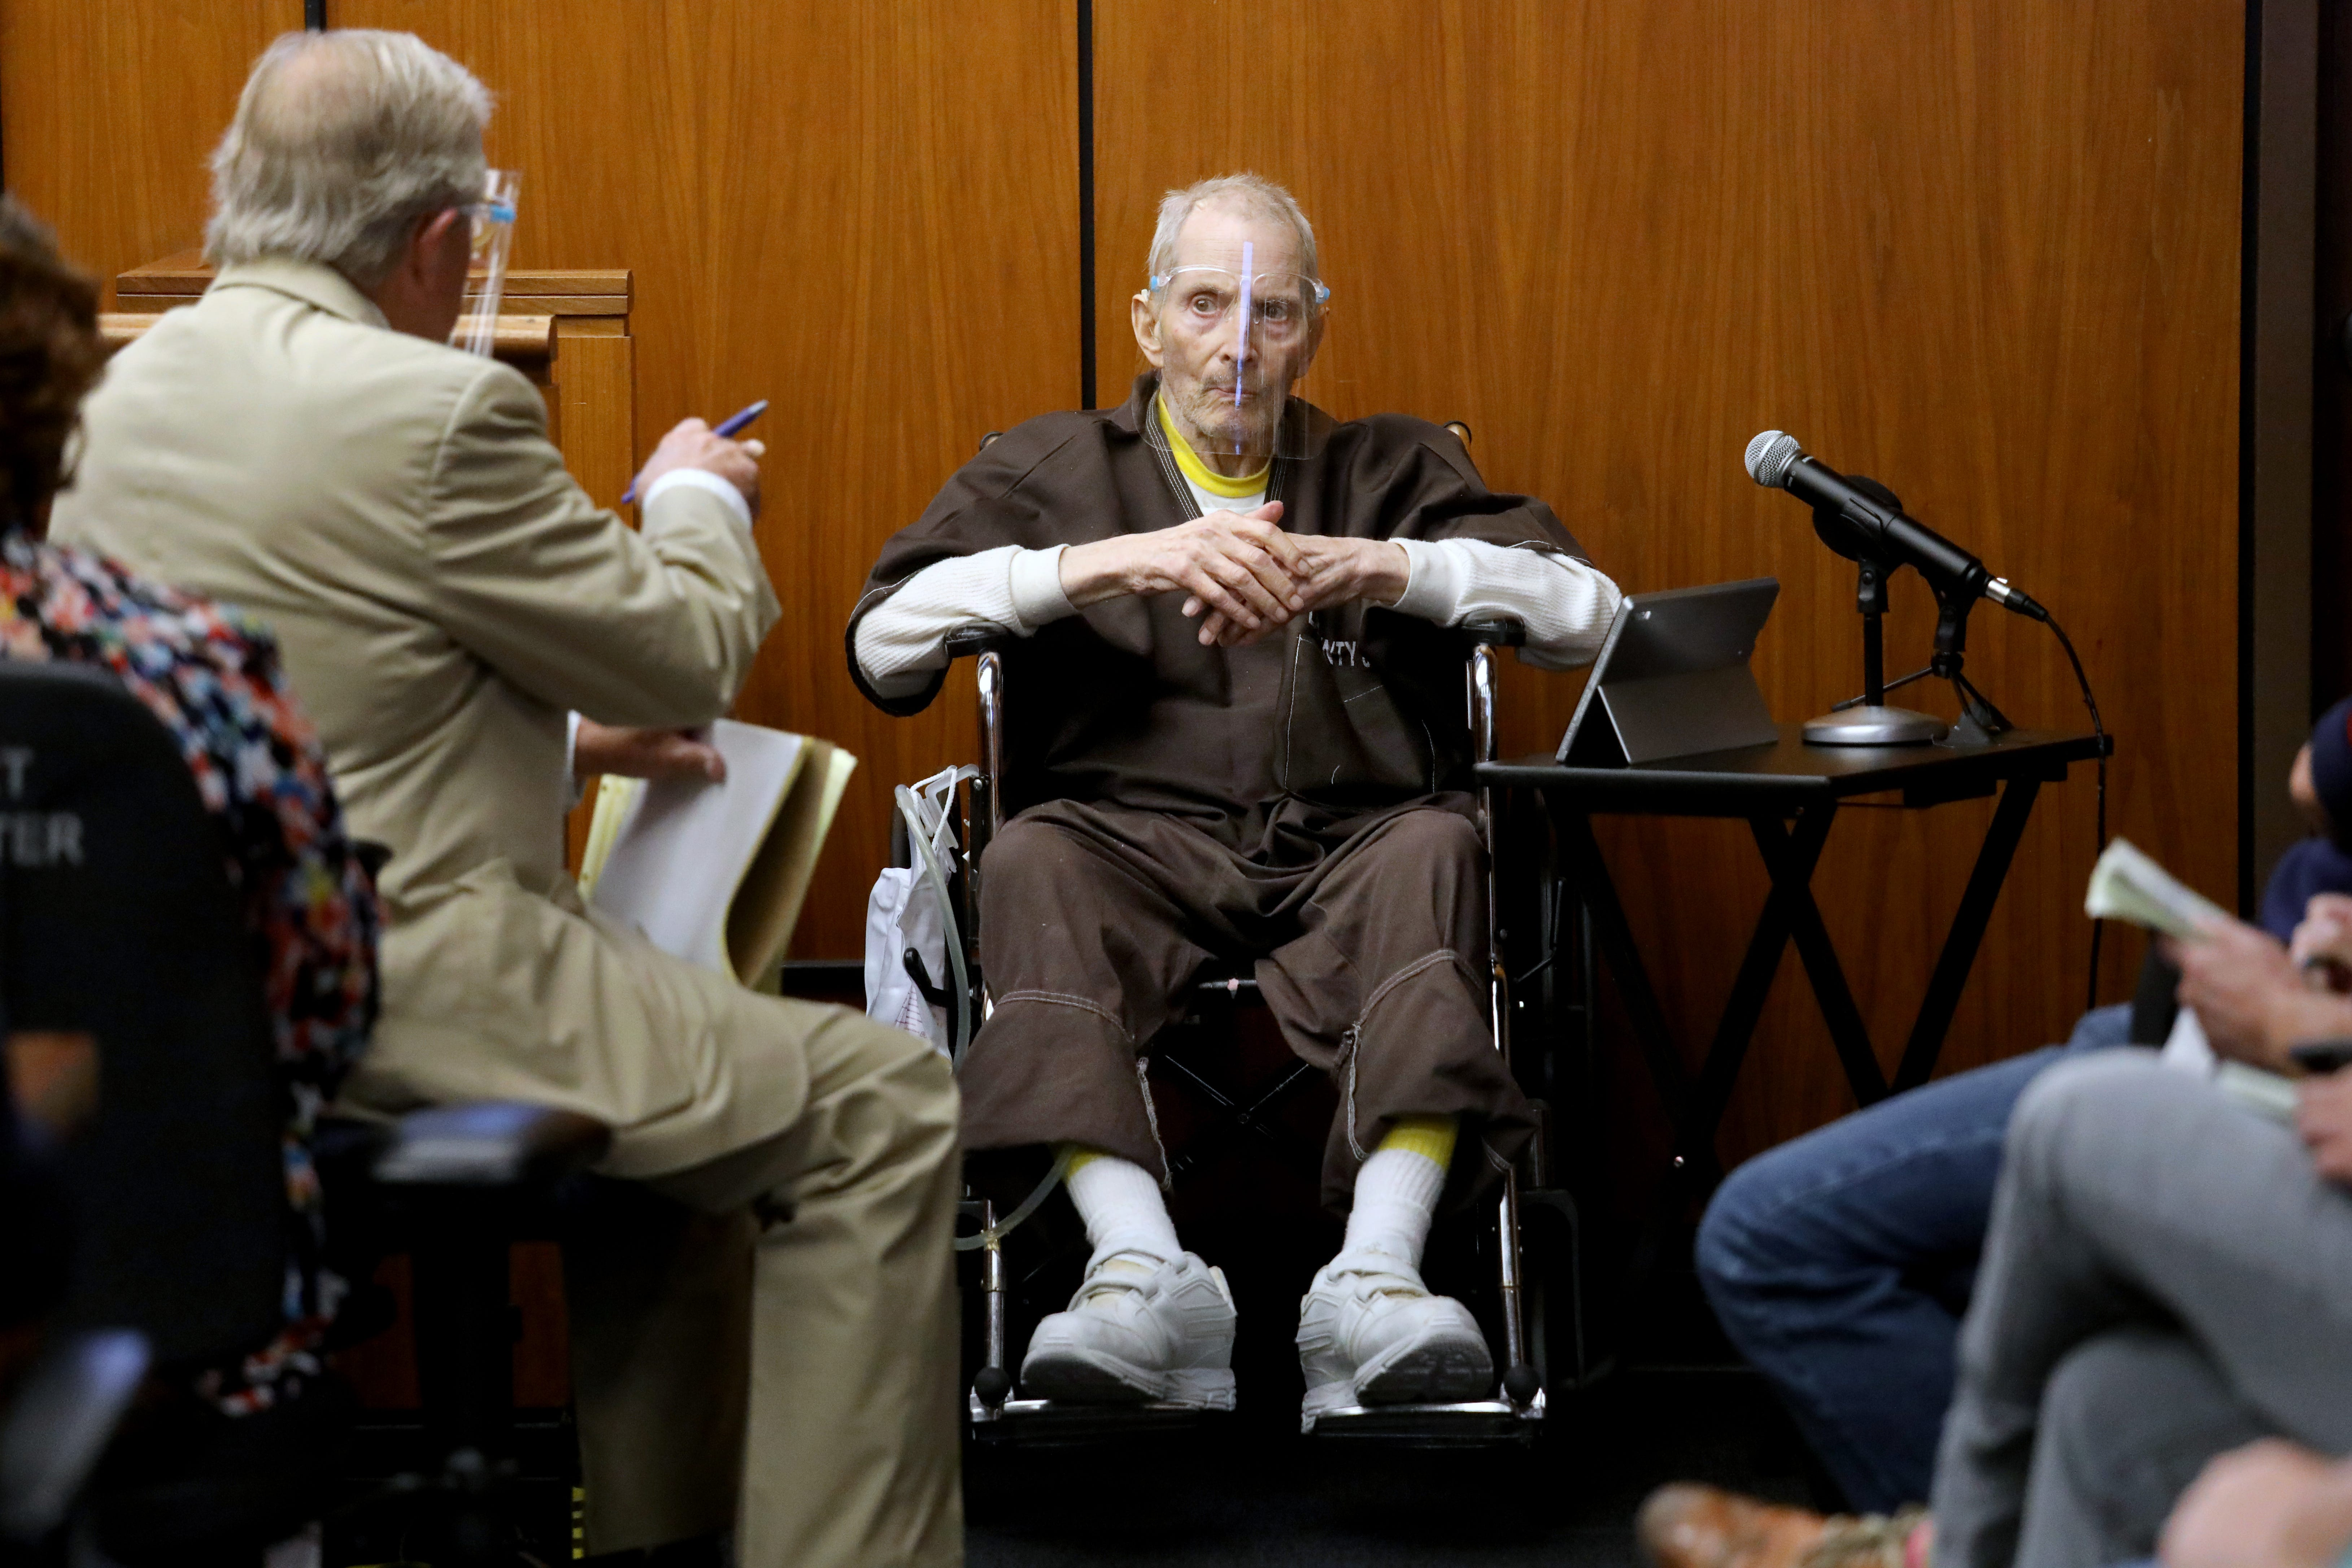 Robert Durst, millionaire who prosecutors say confessed in a documentary, found guilty of best friend's murder